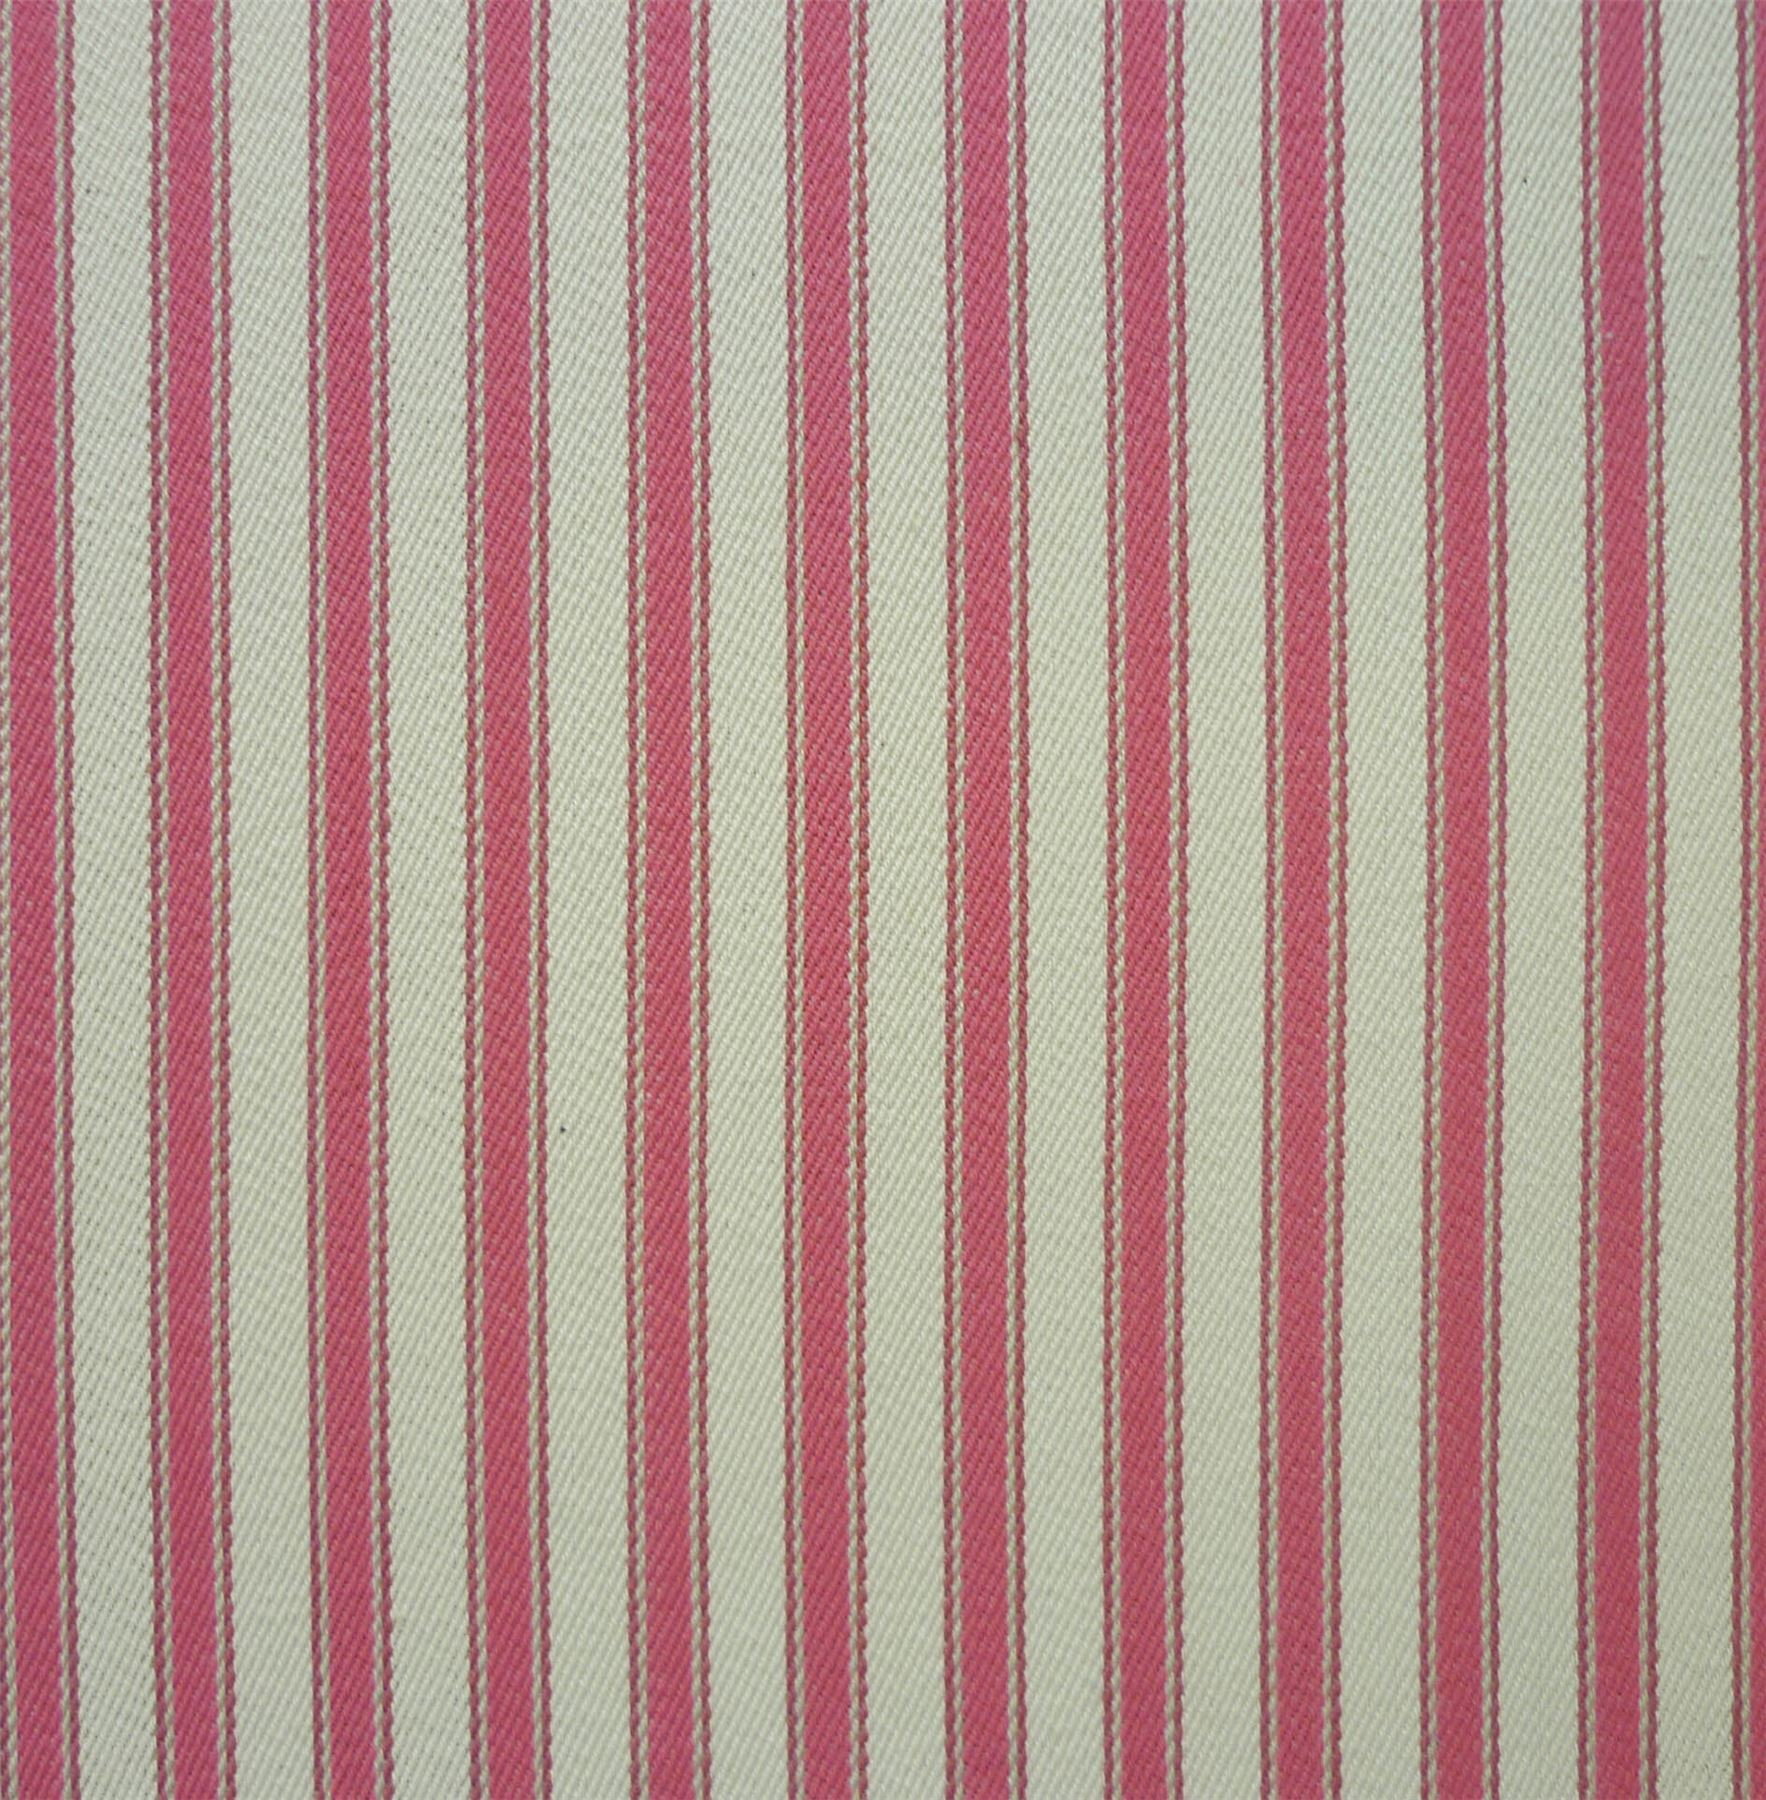 Vintage cotton ticking stripe deck chair 100 cotton for Ticking fabric